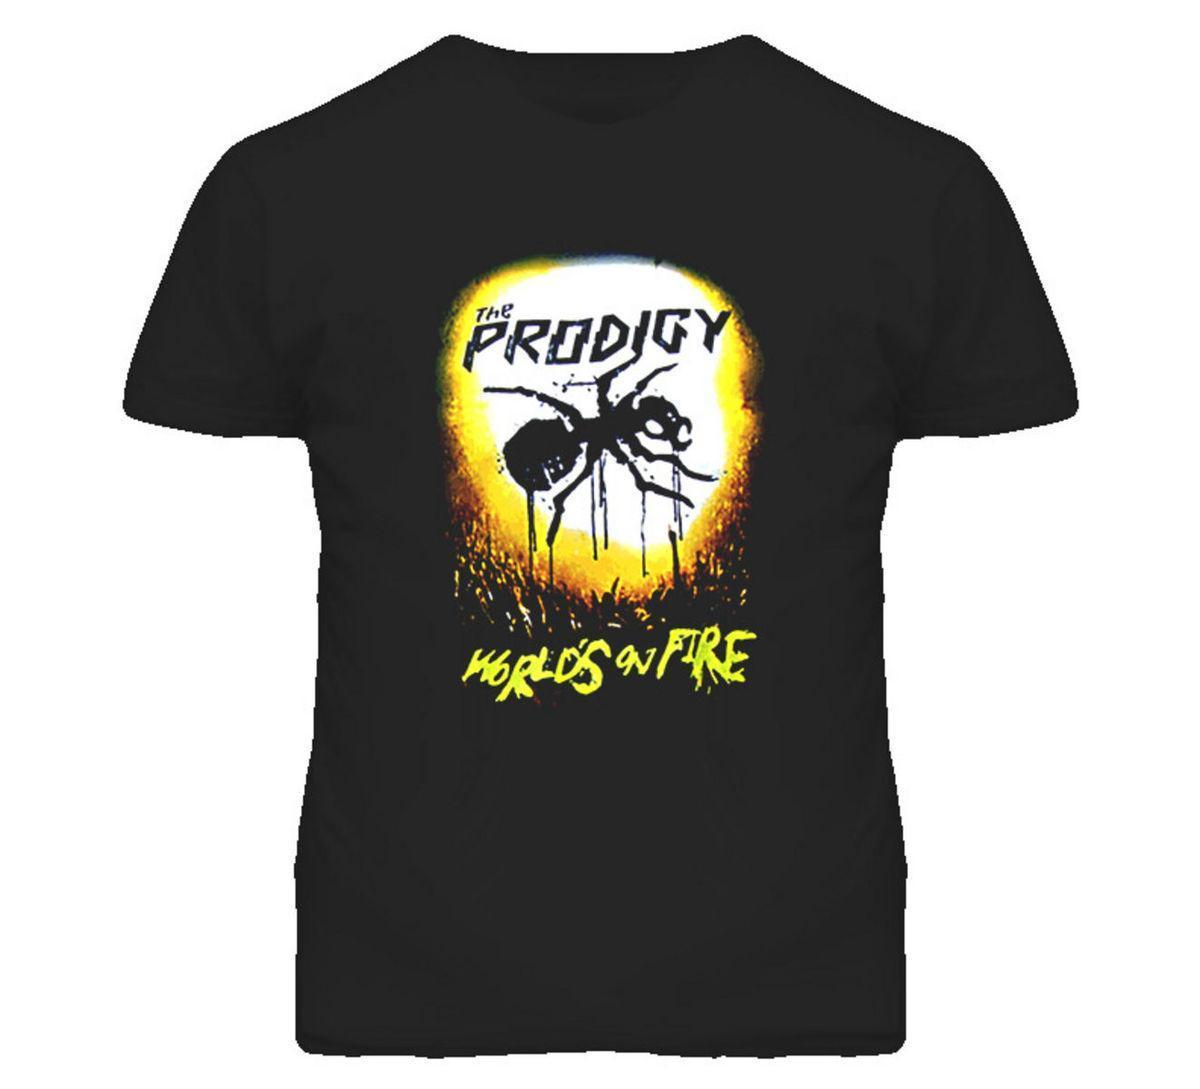 The Prodigy Worlds on Fire T Shirt Short Sleeve T-Shirt Free Shipping 2018  Hot Sale Super Fashion Letter Printing